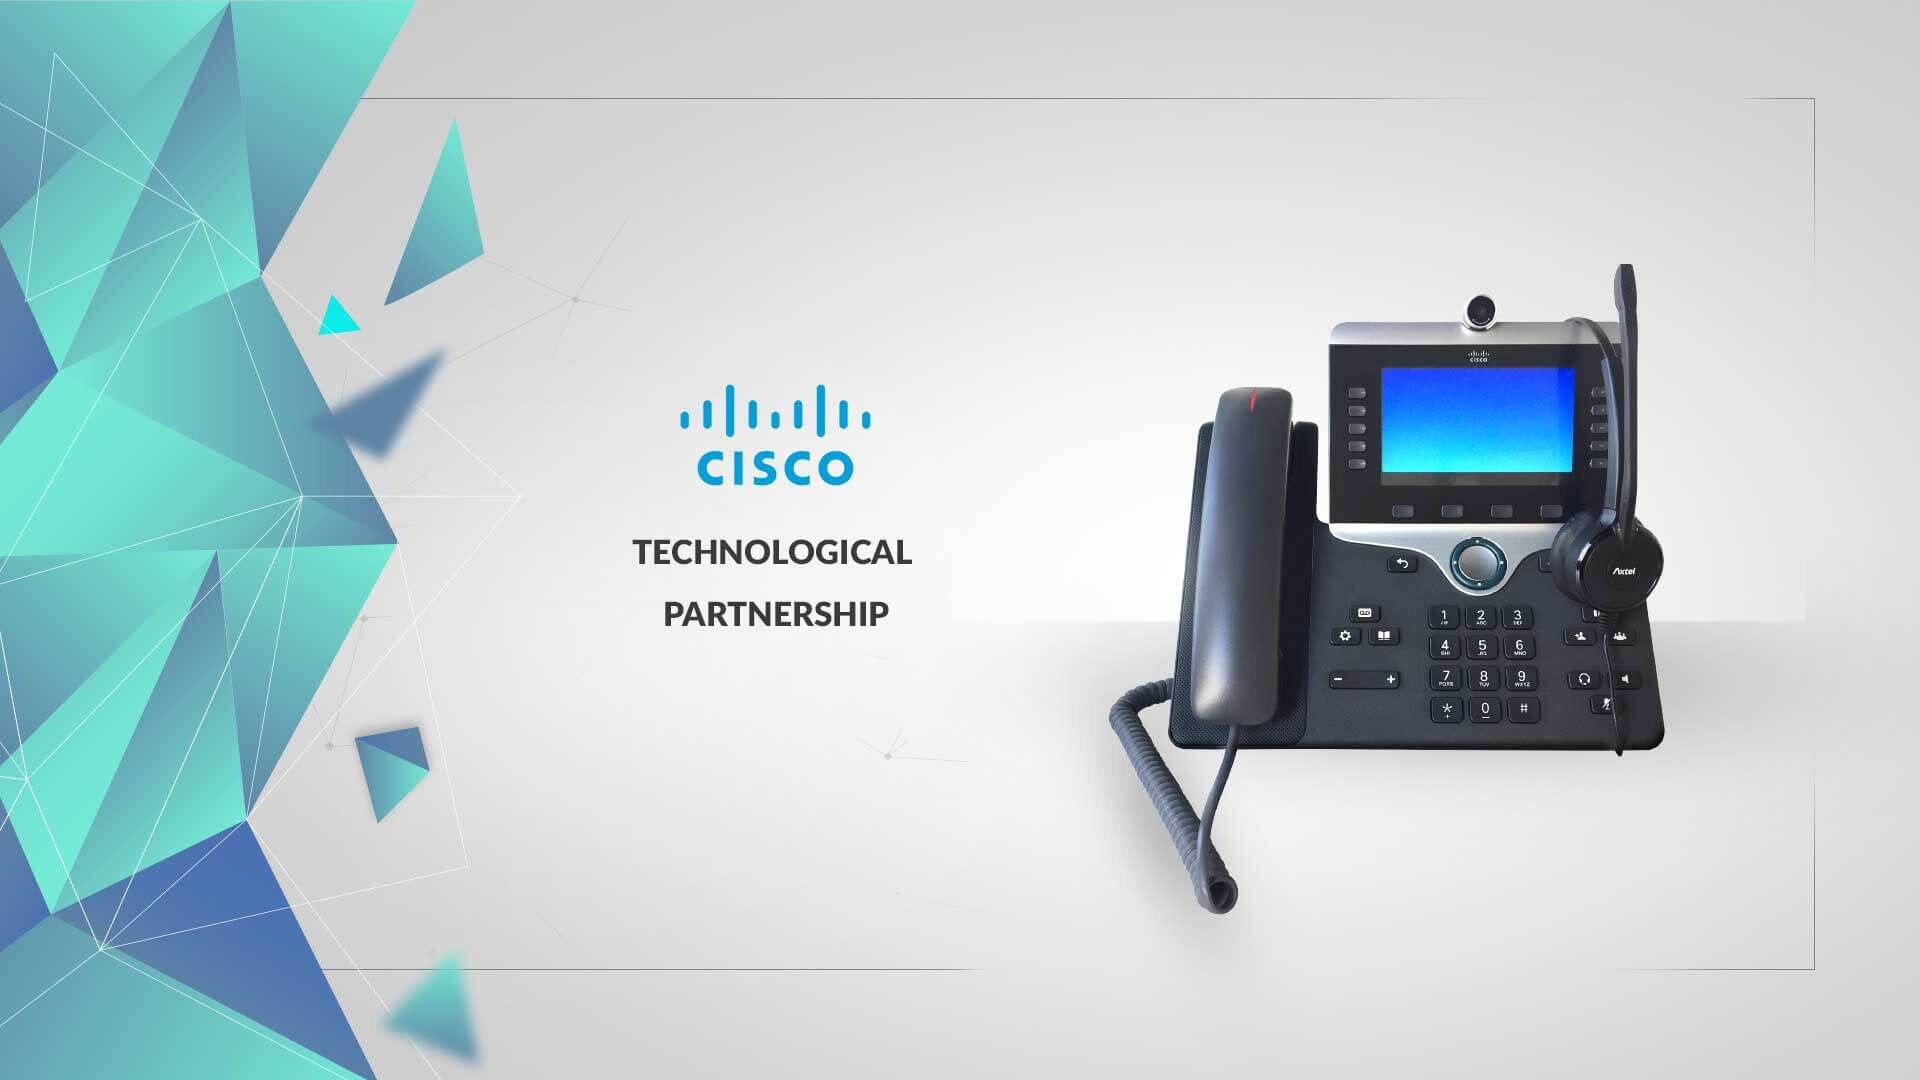 axtel_Cisco_technological_partnership